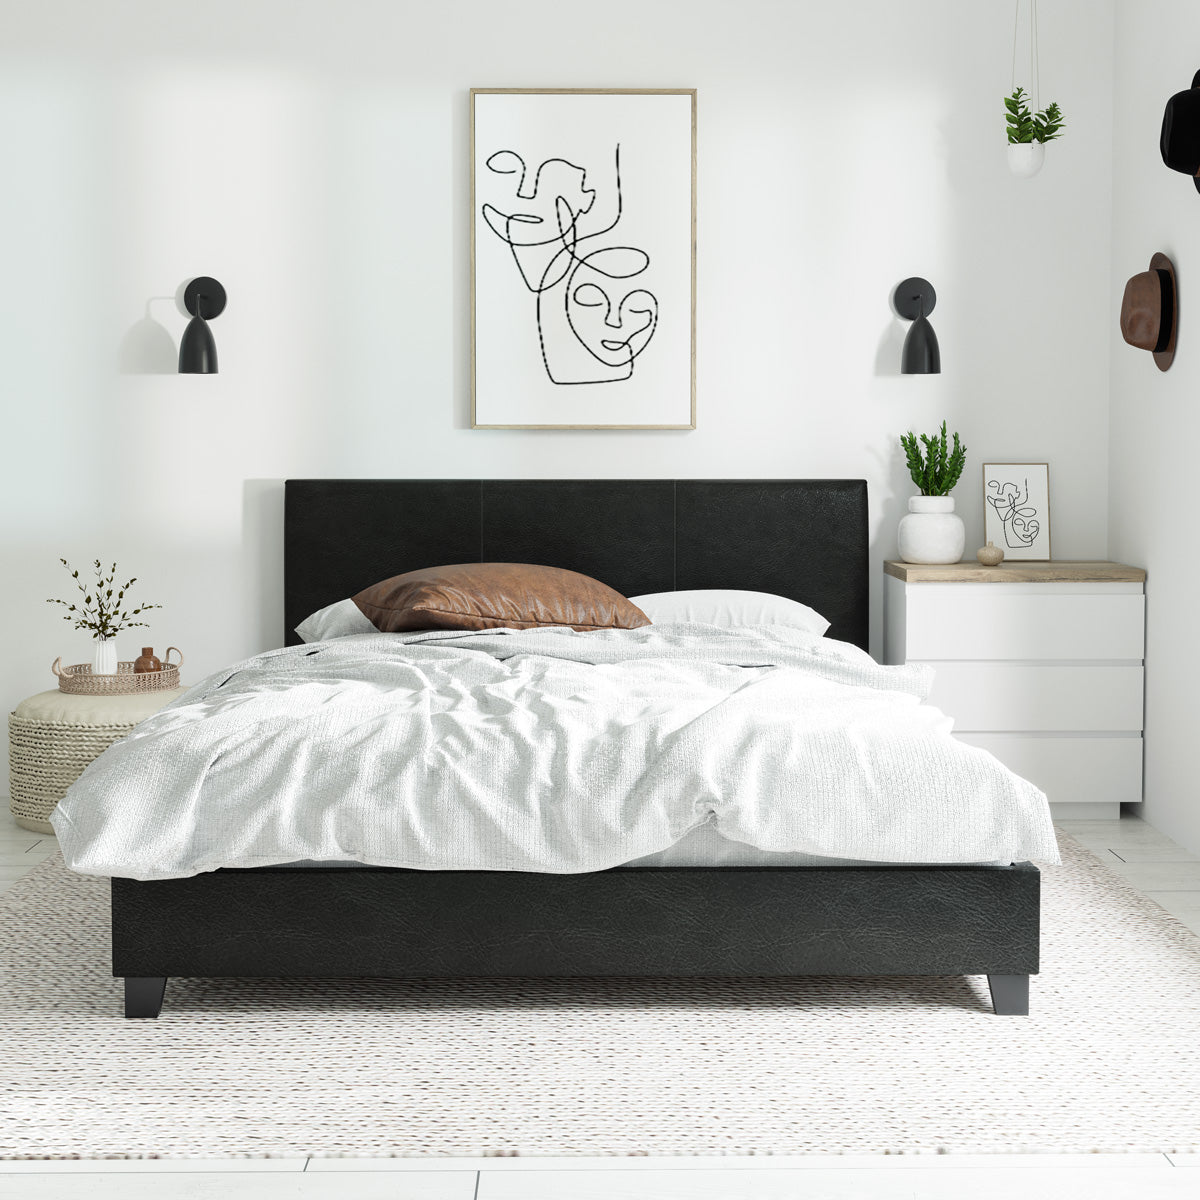 Arthur PU Leather Bed Frame (Black)